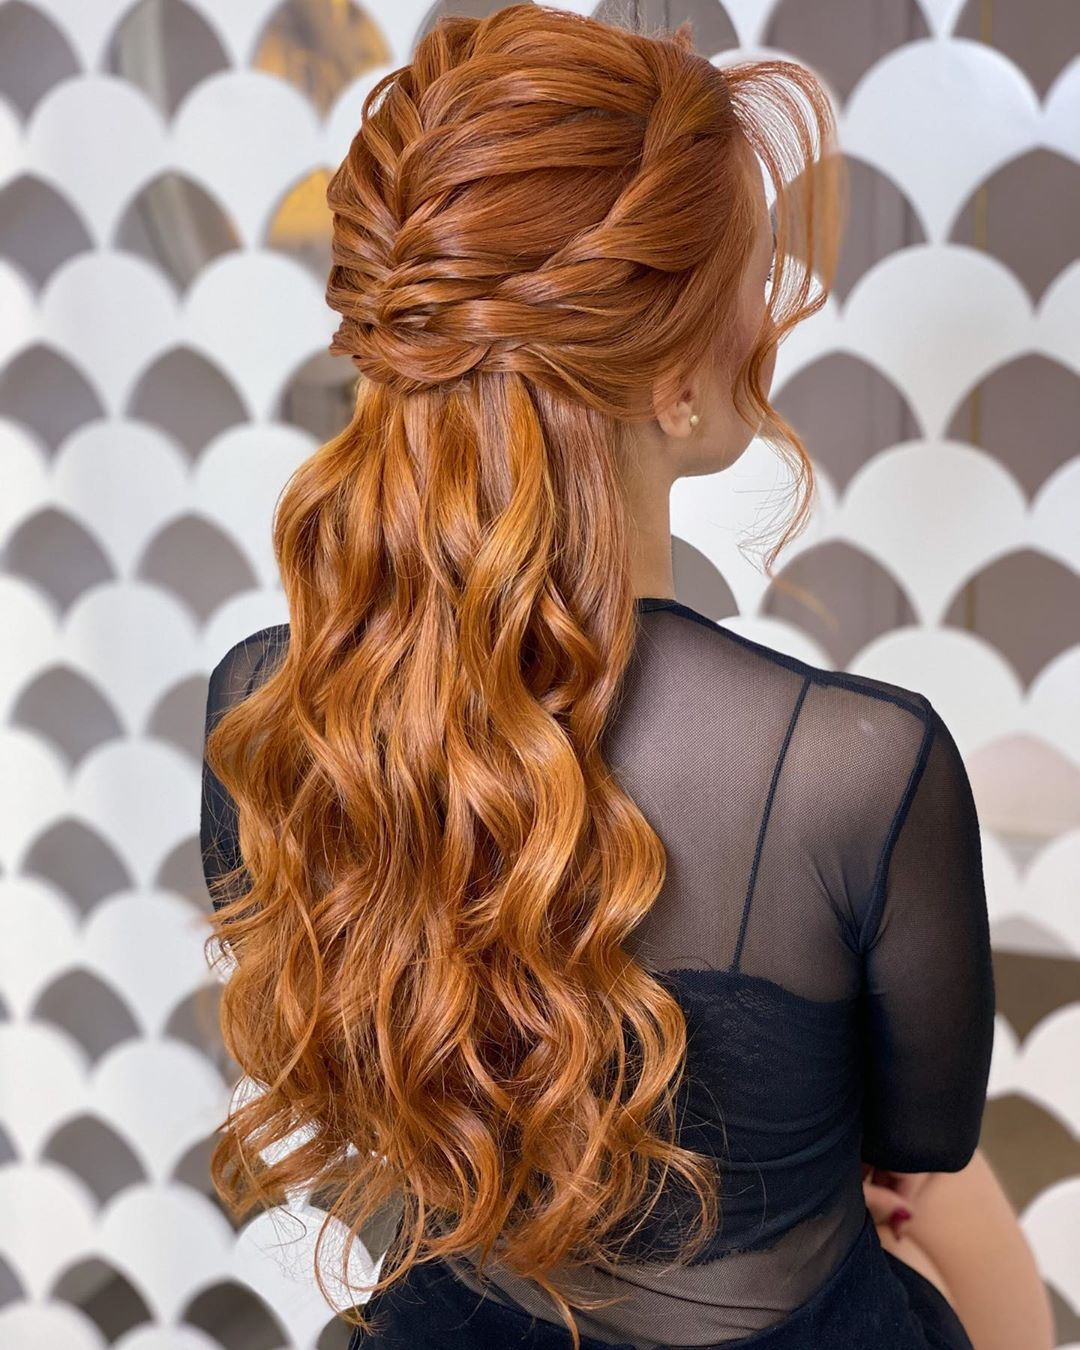 Long Curly Half-Up Hair with Braids